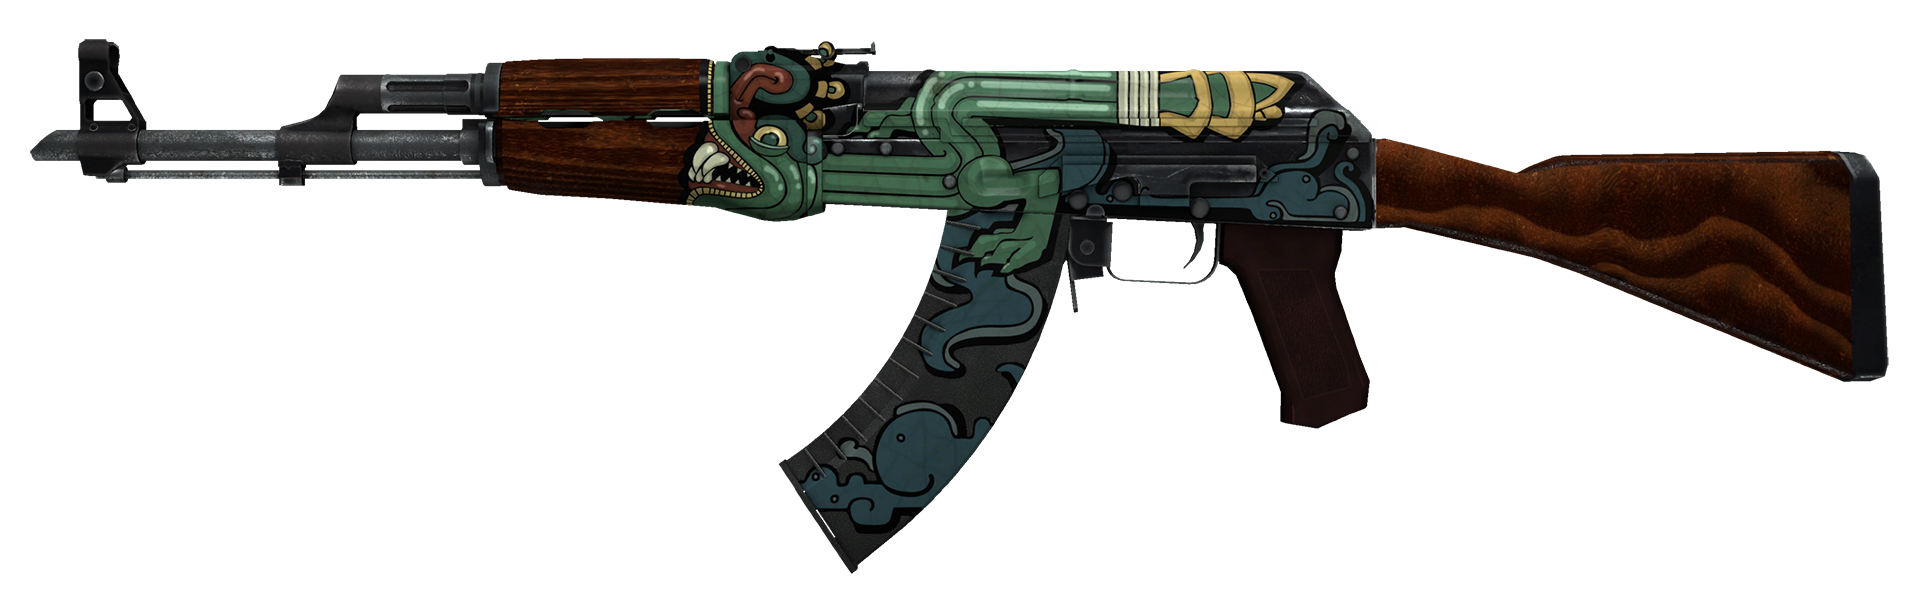 AK-47 Fire Serpent Large Rendering